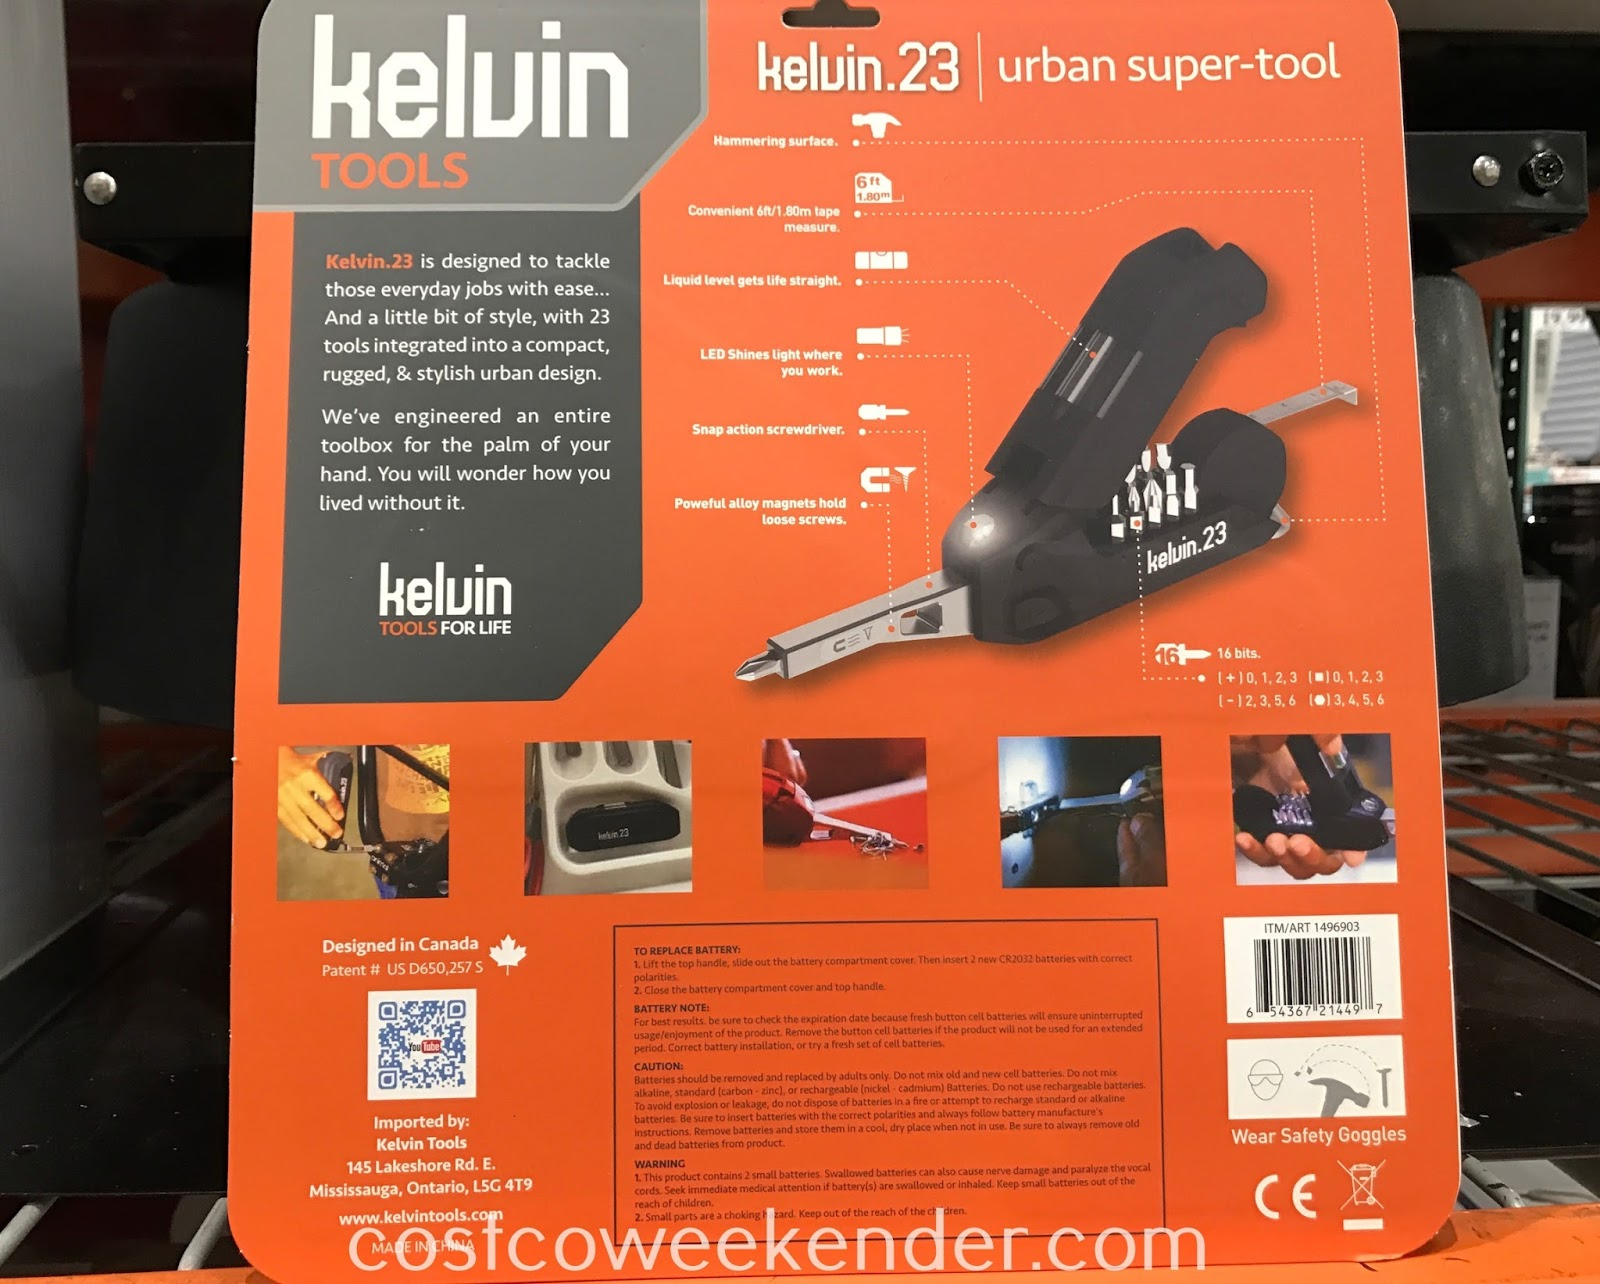 Costco 1496903 - Kelvin.23 Urban Super Tool: perfect for your house, condo, apartment, dorm room, RV and glovebox